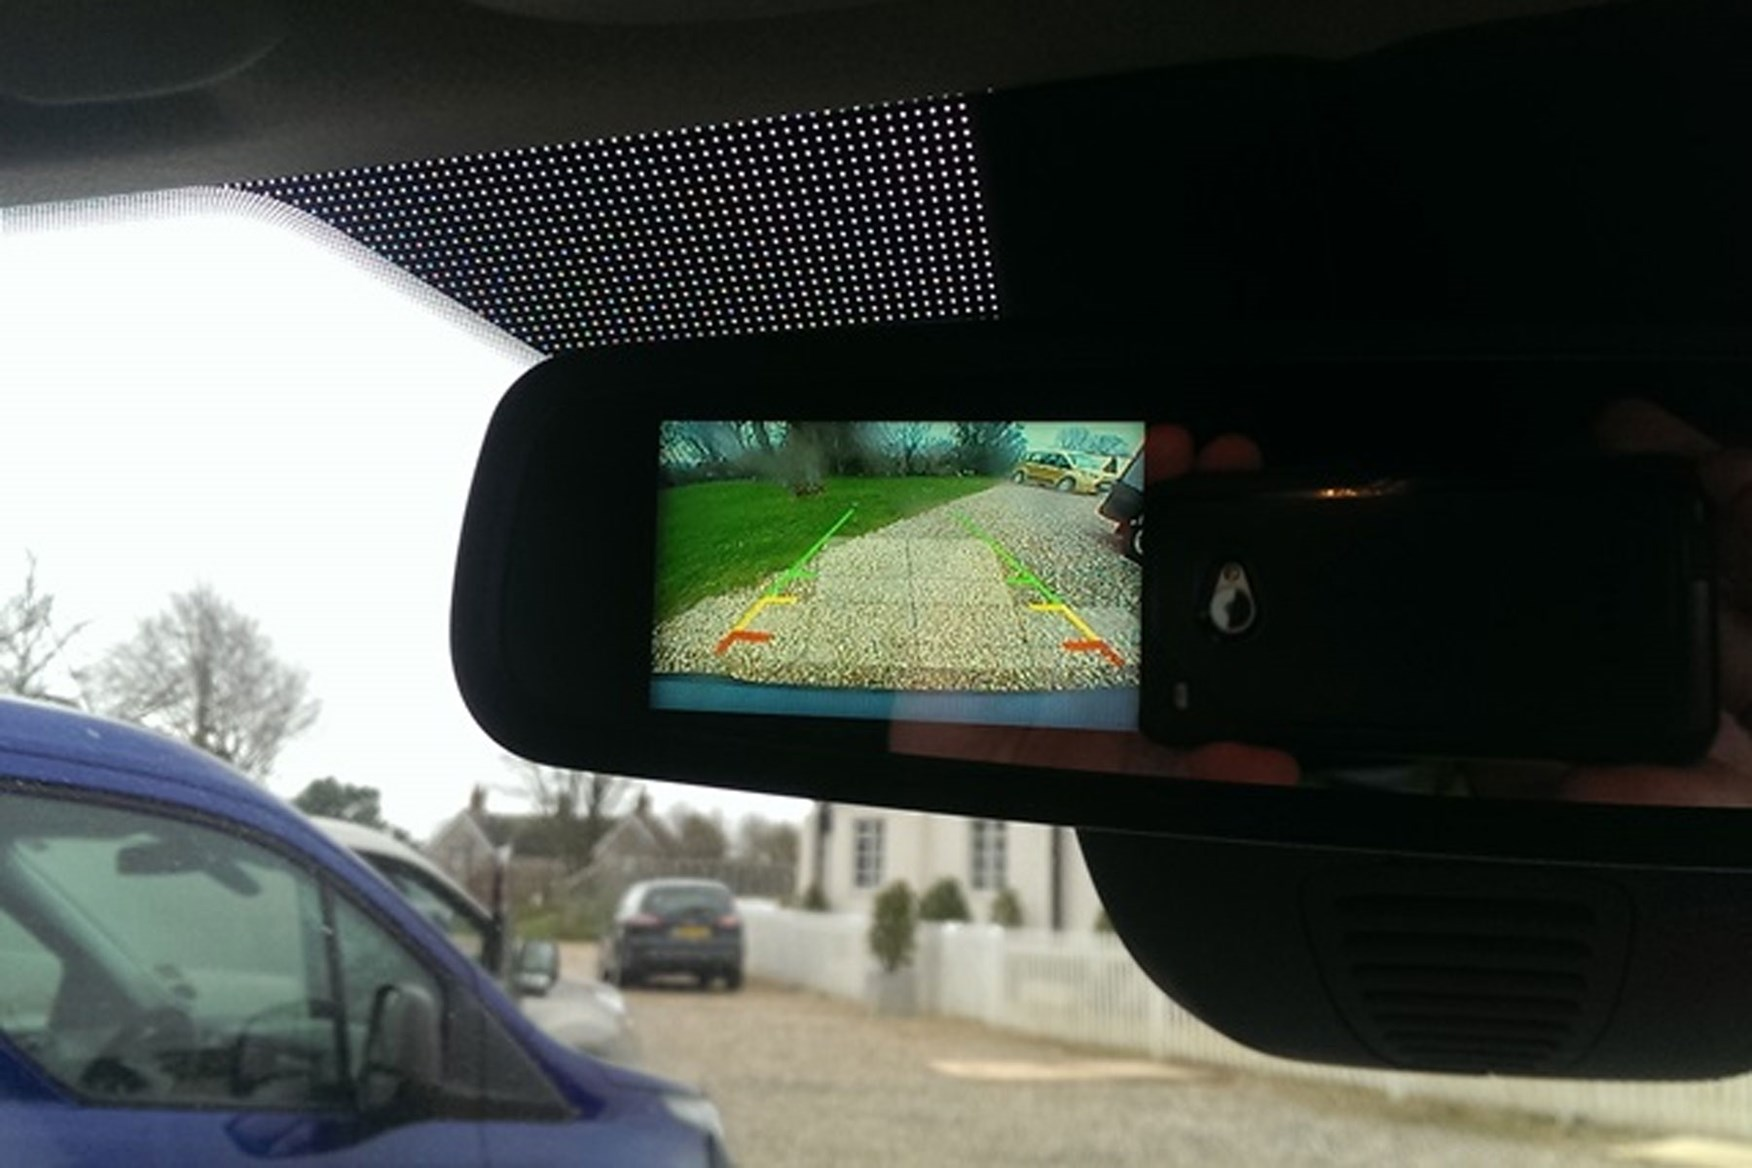 Ford Transit Connect review - 2013 Trend rear view camera in mirror